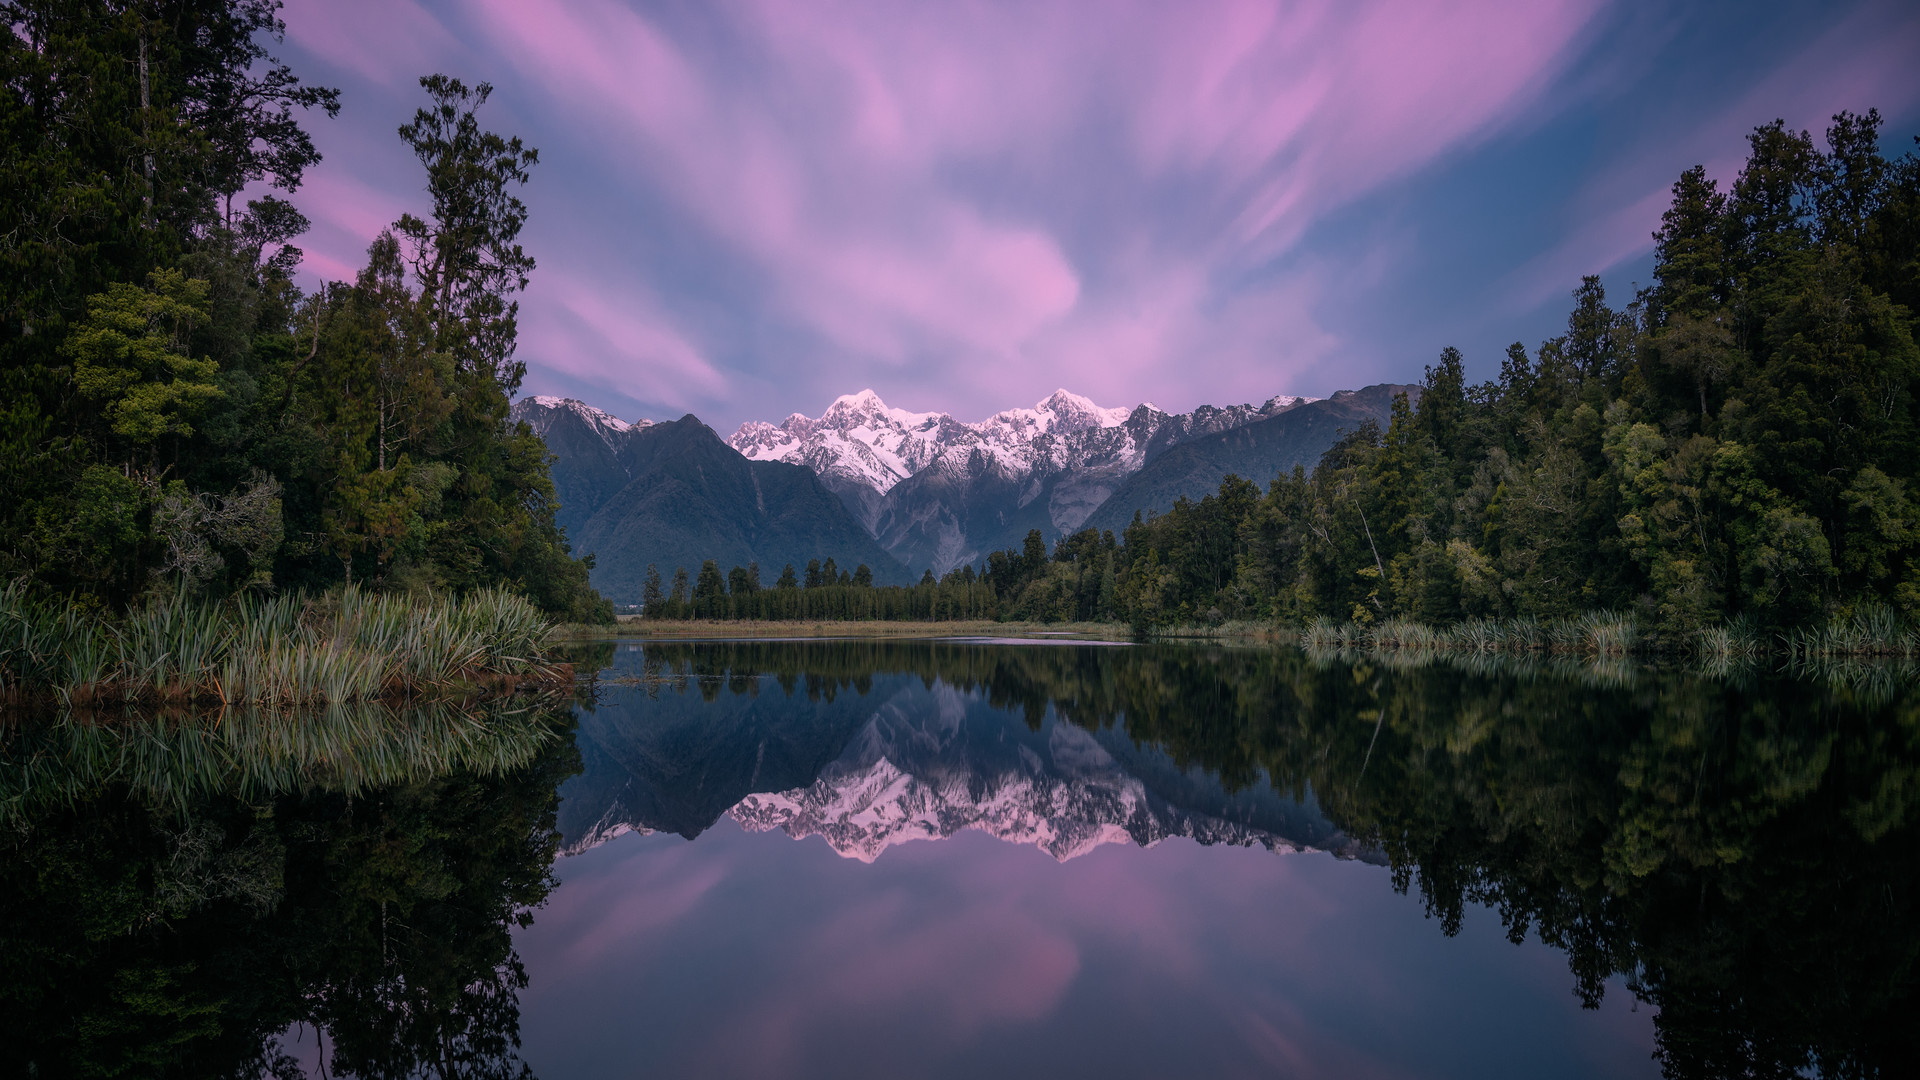 Lake-Matheson-Reflection-Sunset.jpg